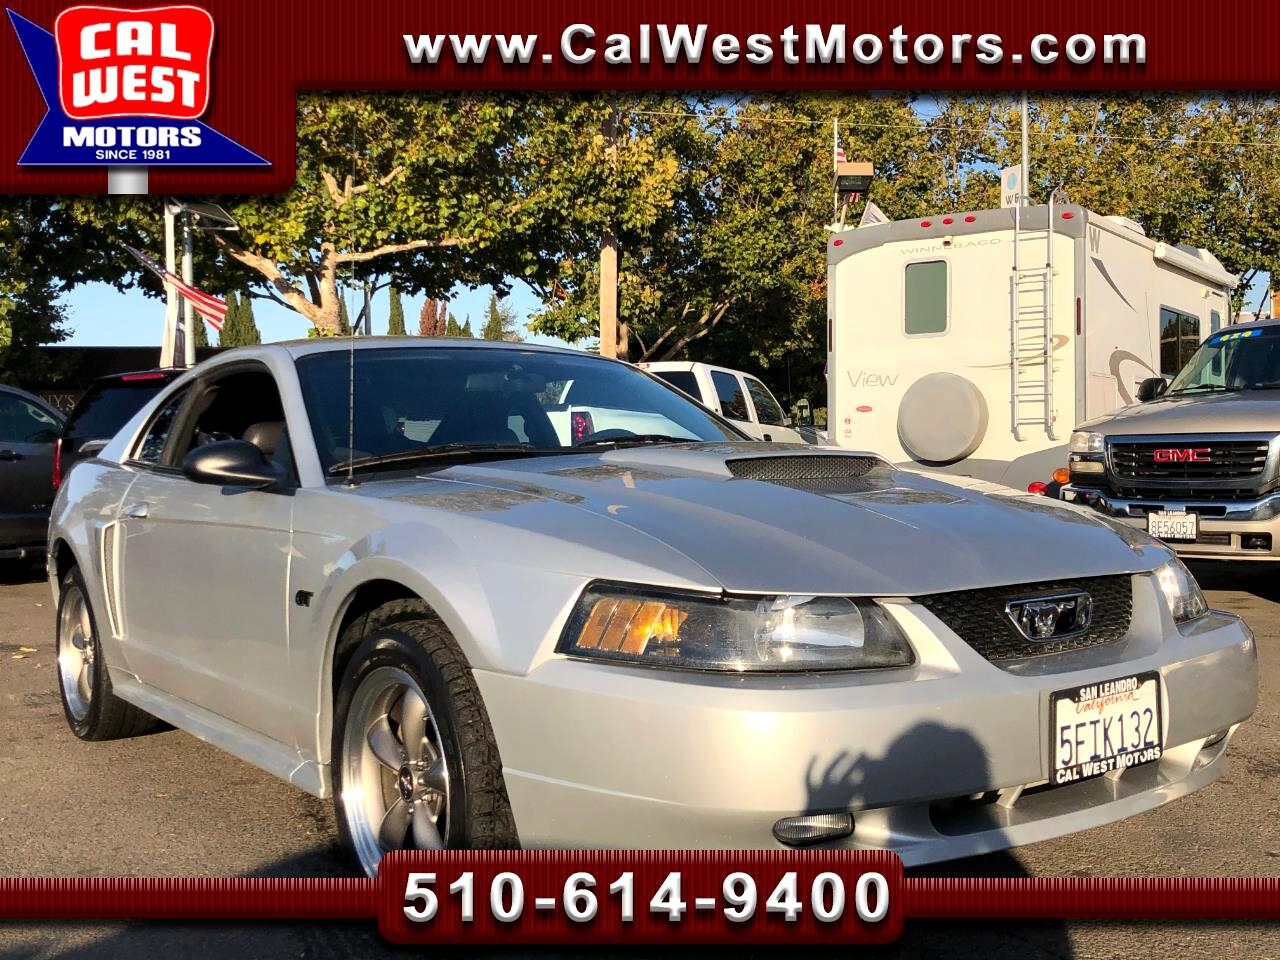 2003 Ford Mustang GT Premium Coupe Auto Only 50,788 Miles SuperNice